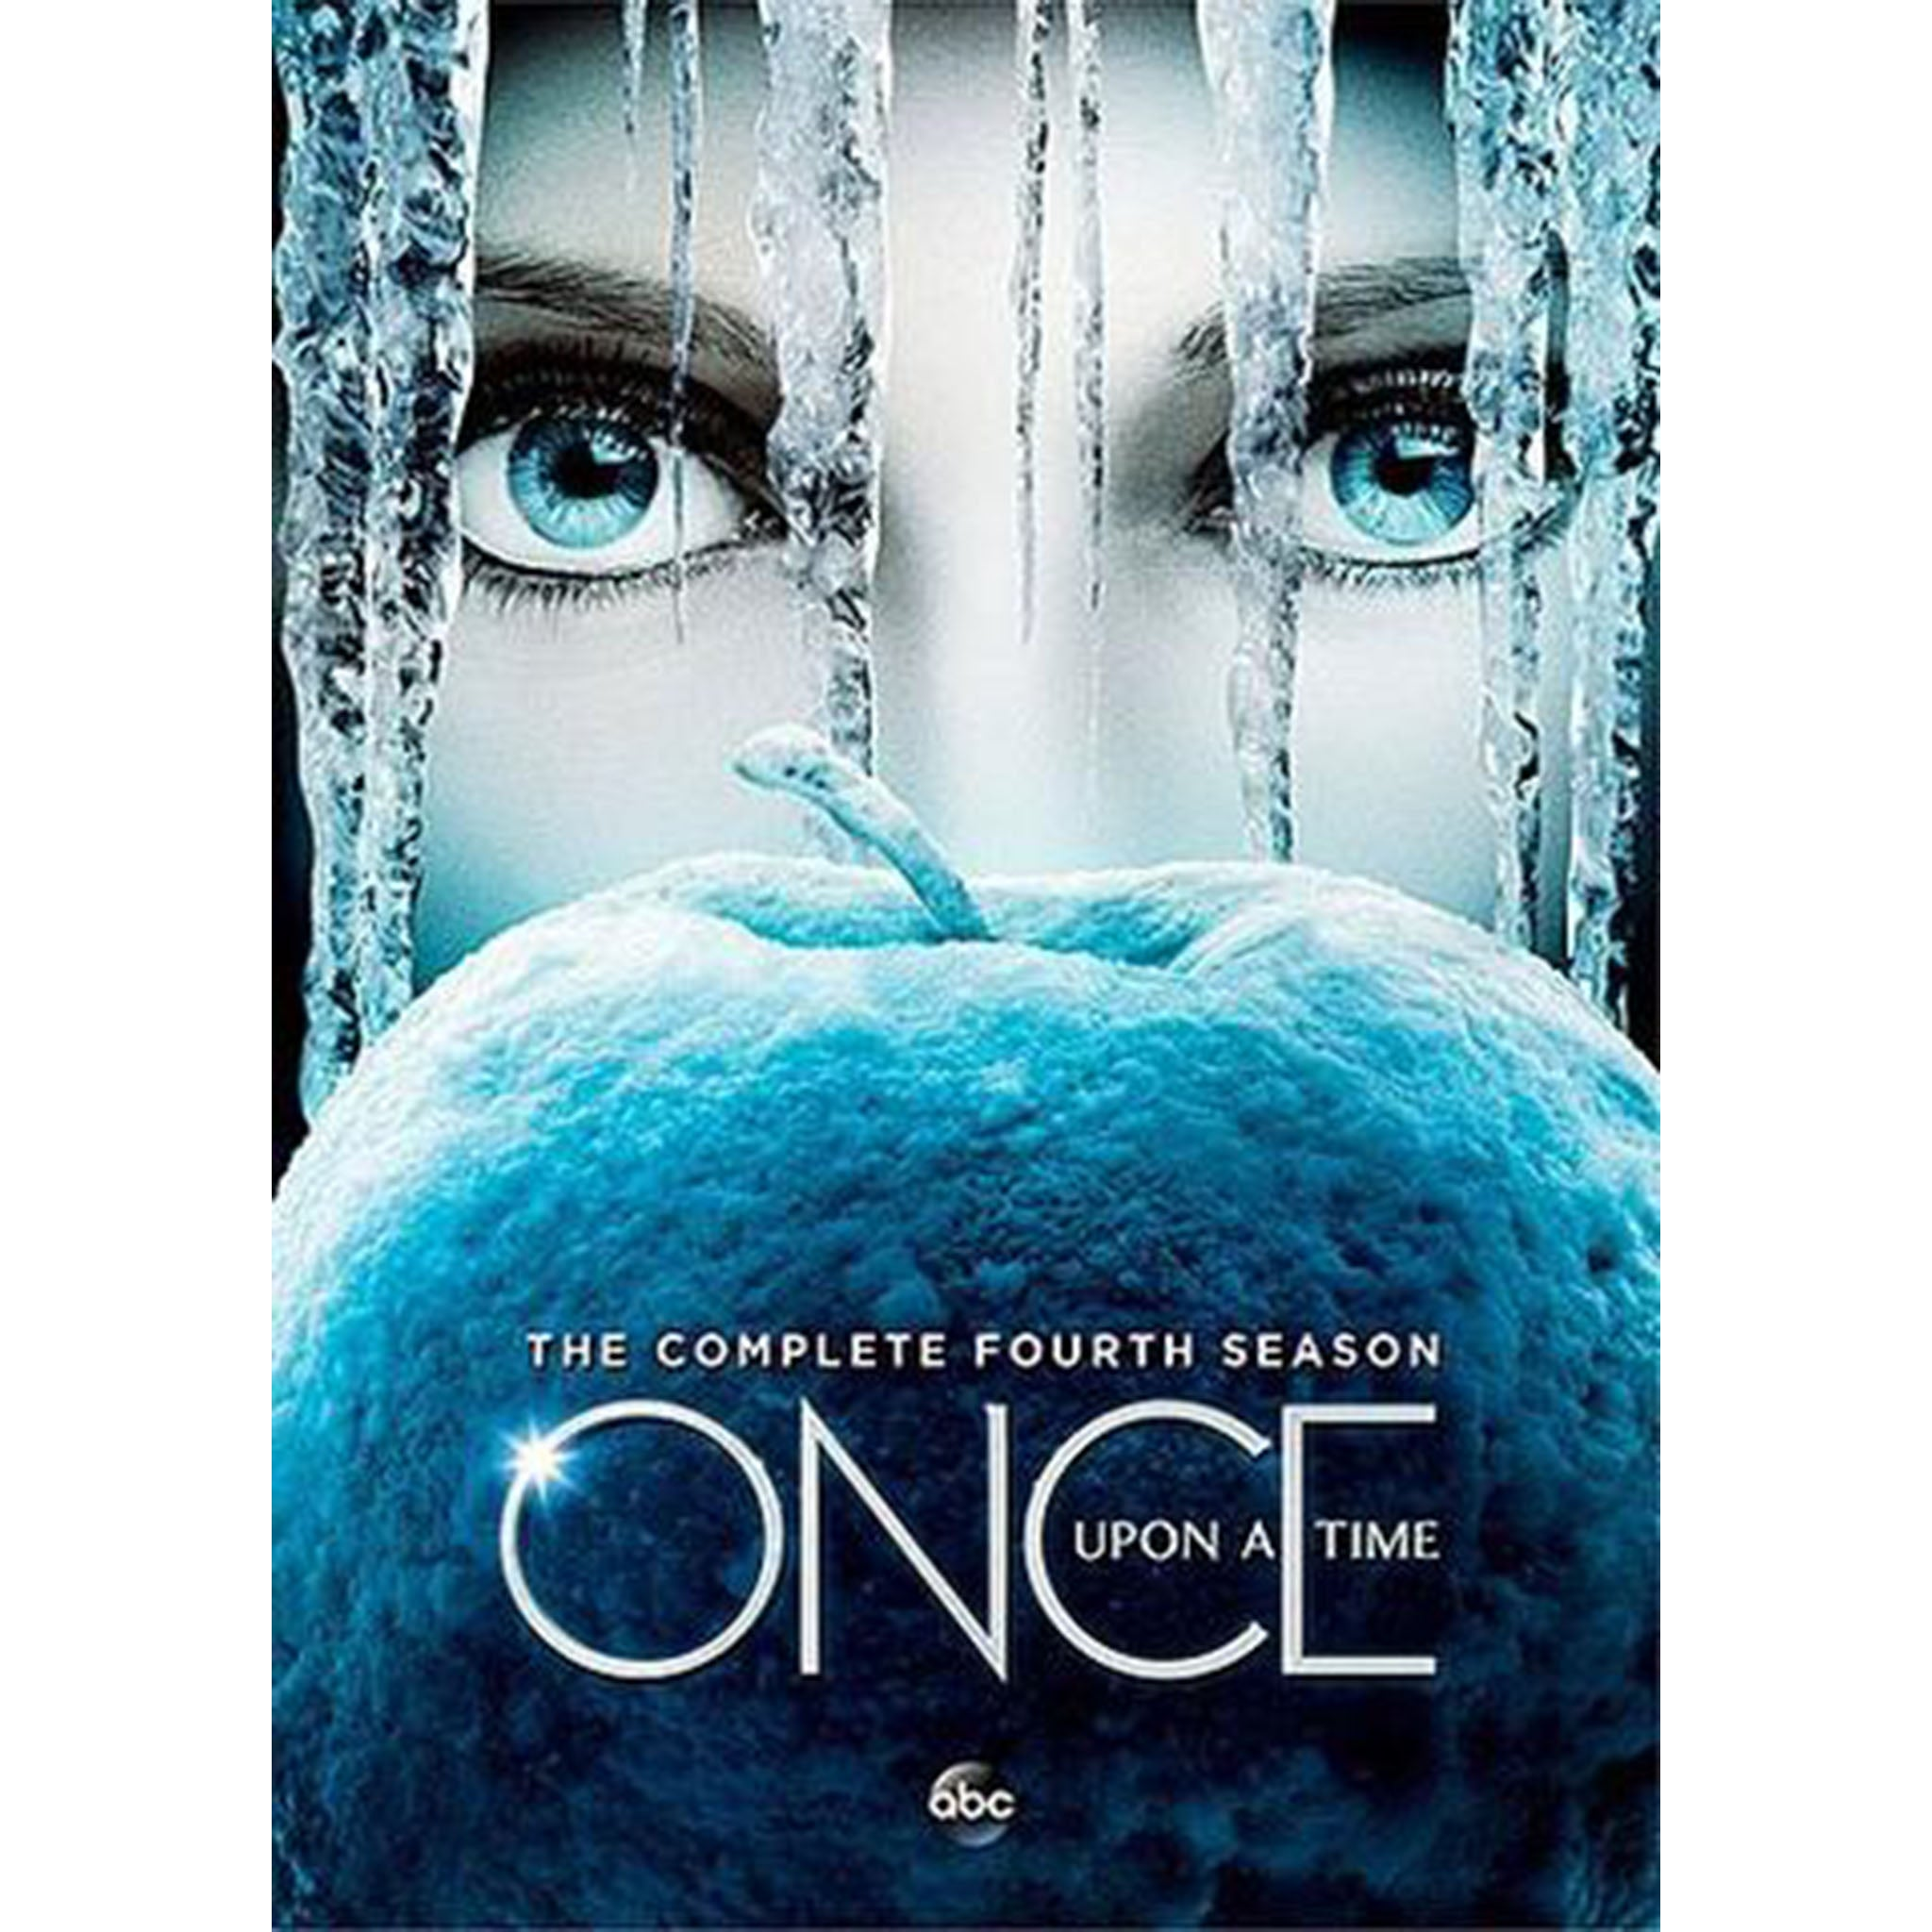 Once Upon a Time: Season 4 (DVD) - DVDsHQ